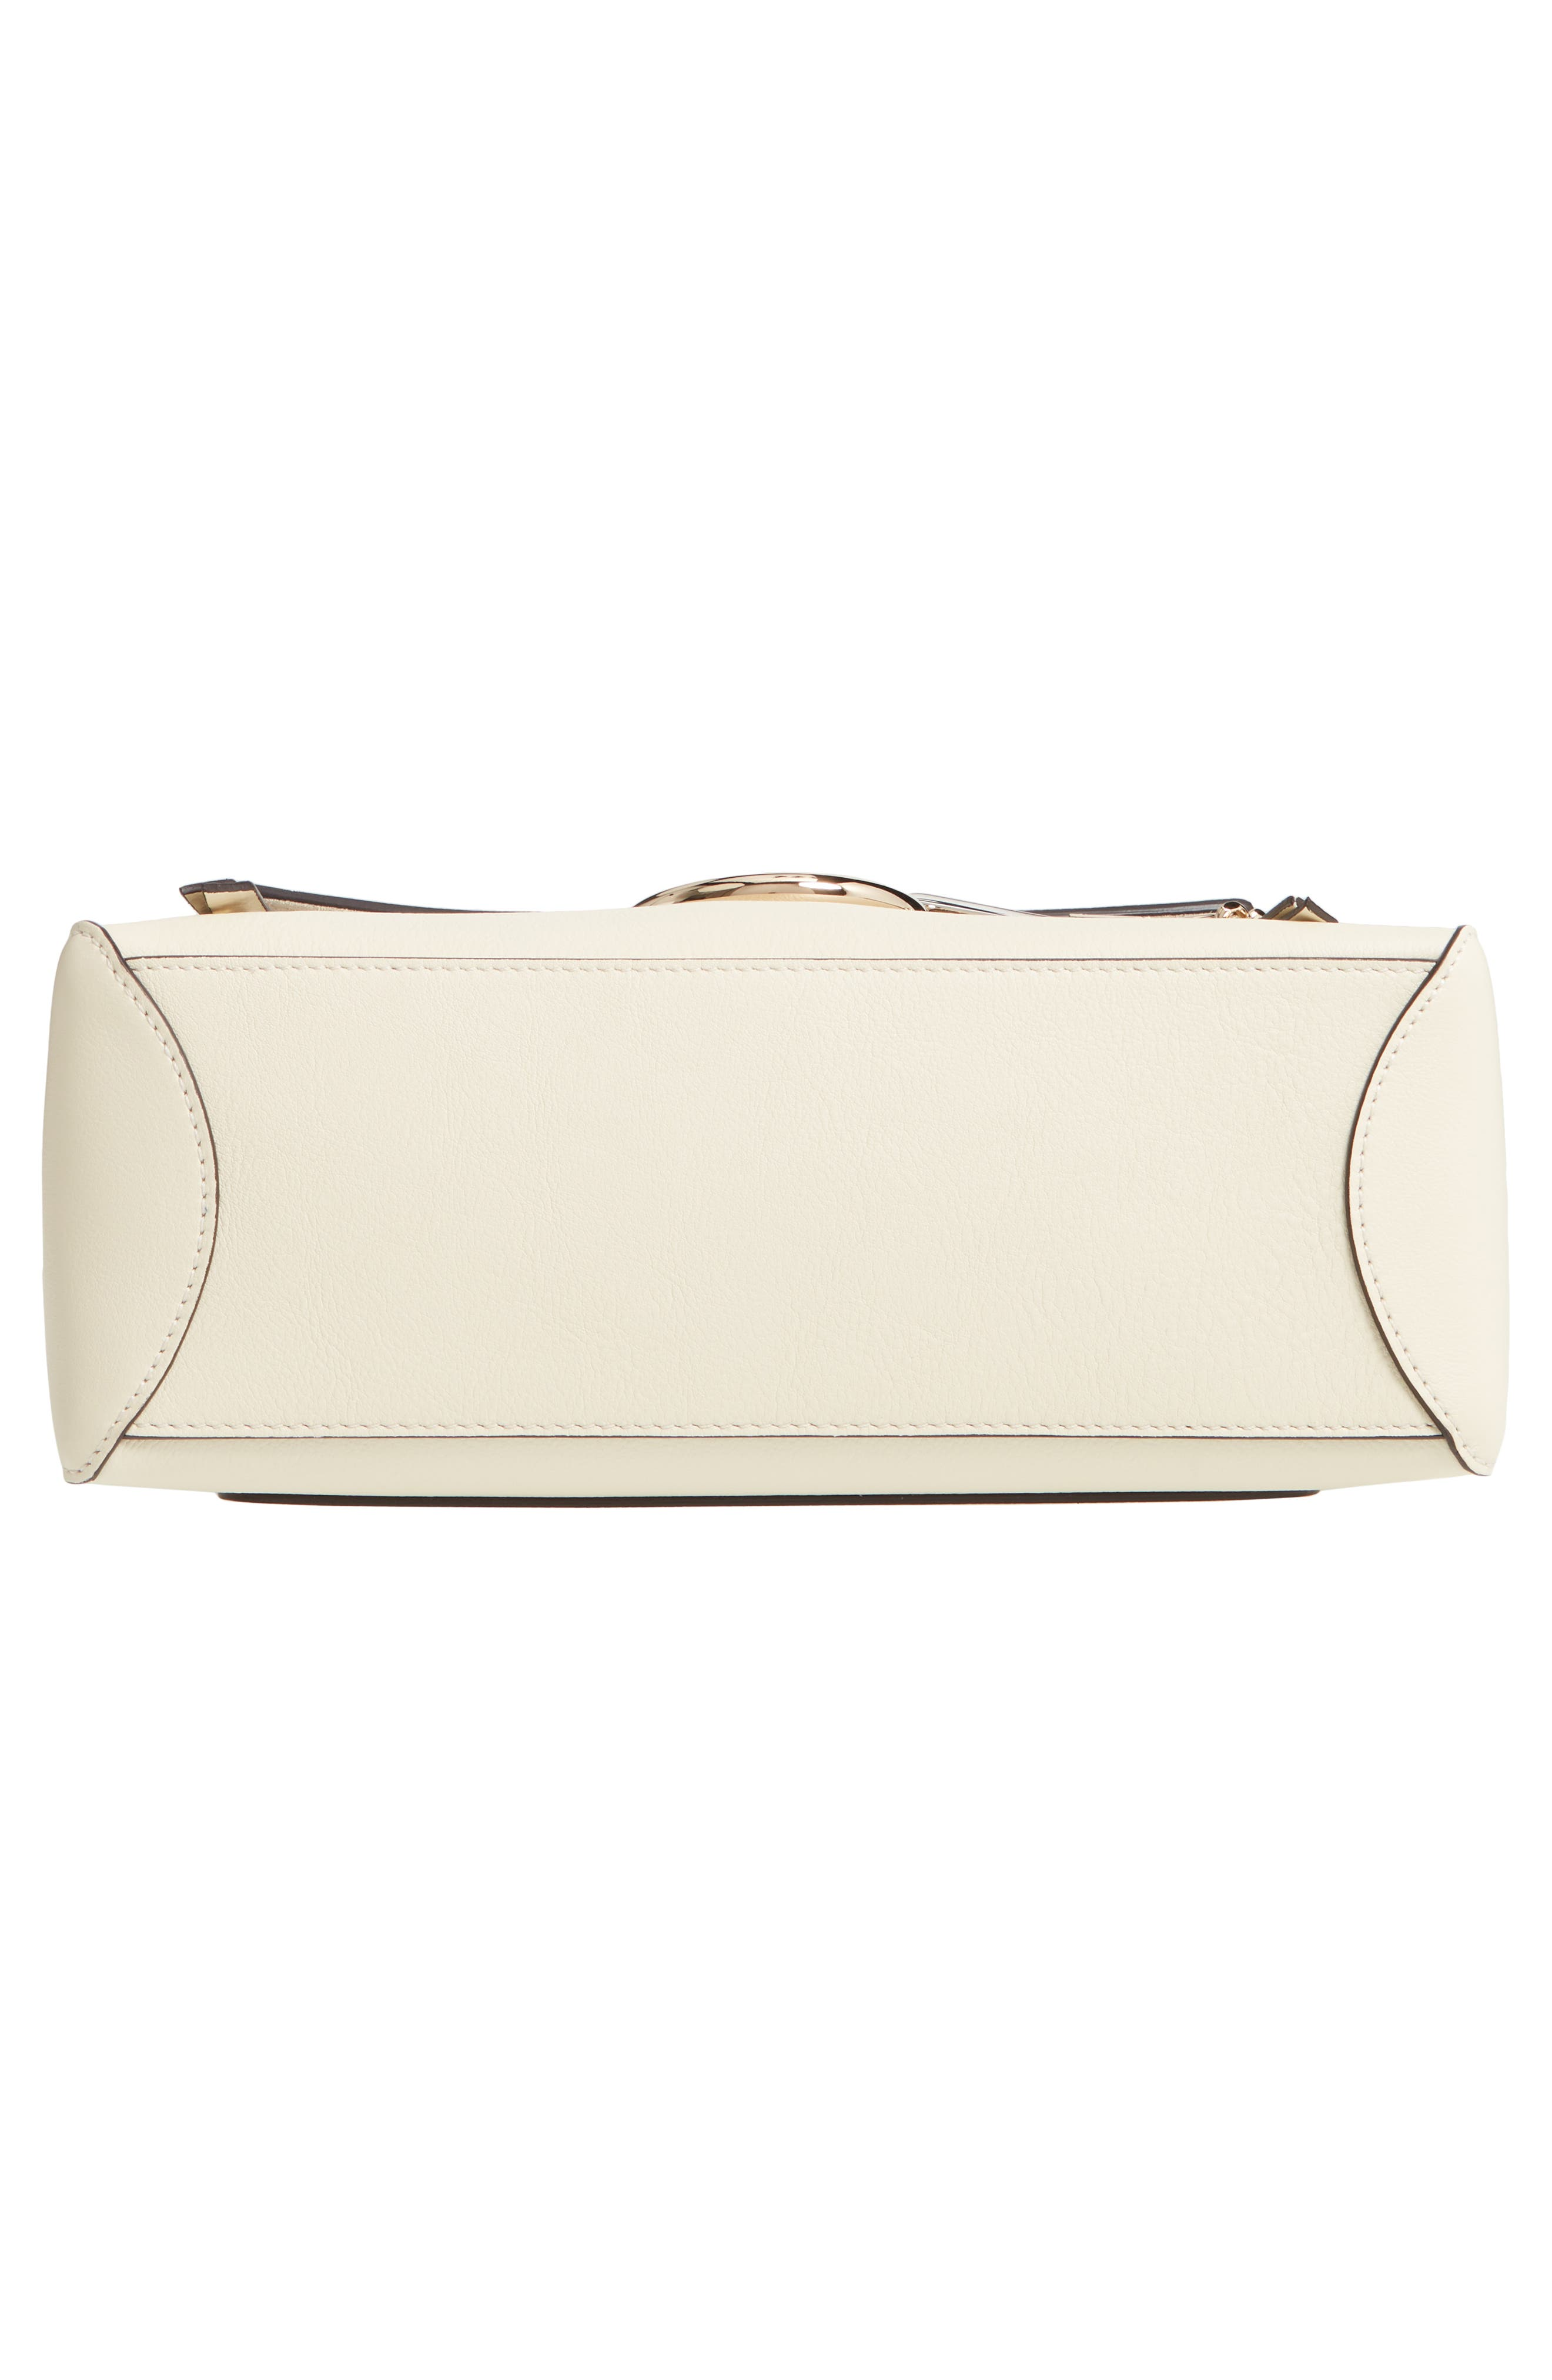 CHLOÉ, Small Faye Day Leather Shoulder Bag, Alternate thumbnail 6, color, OFF WHITE